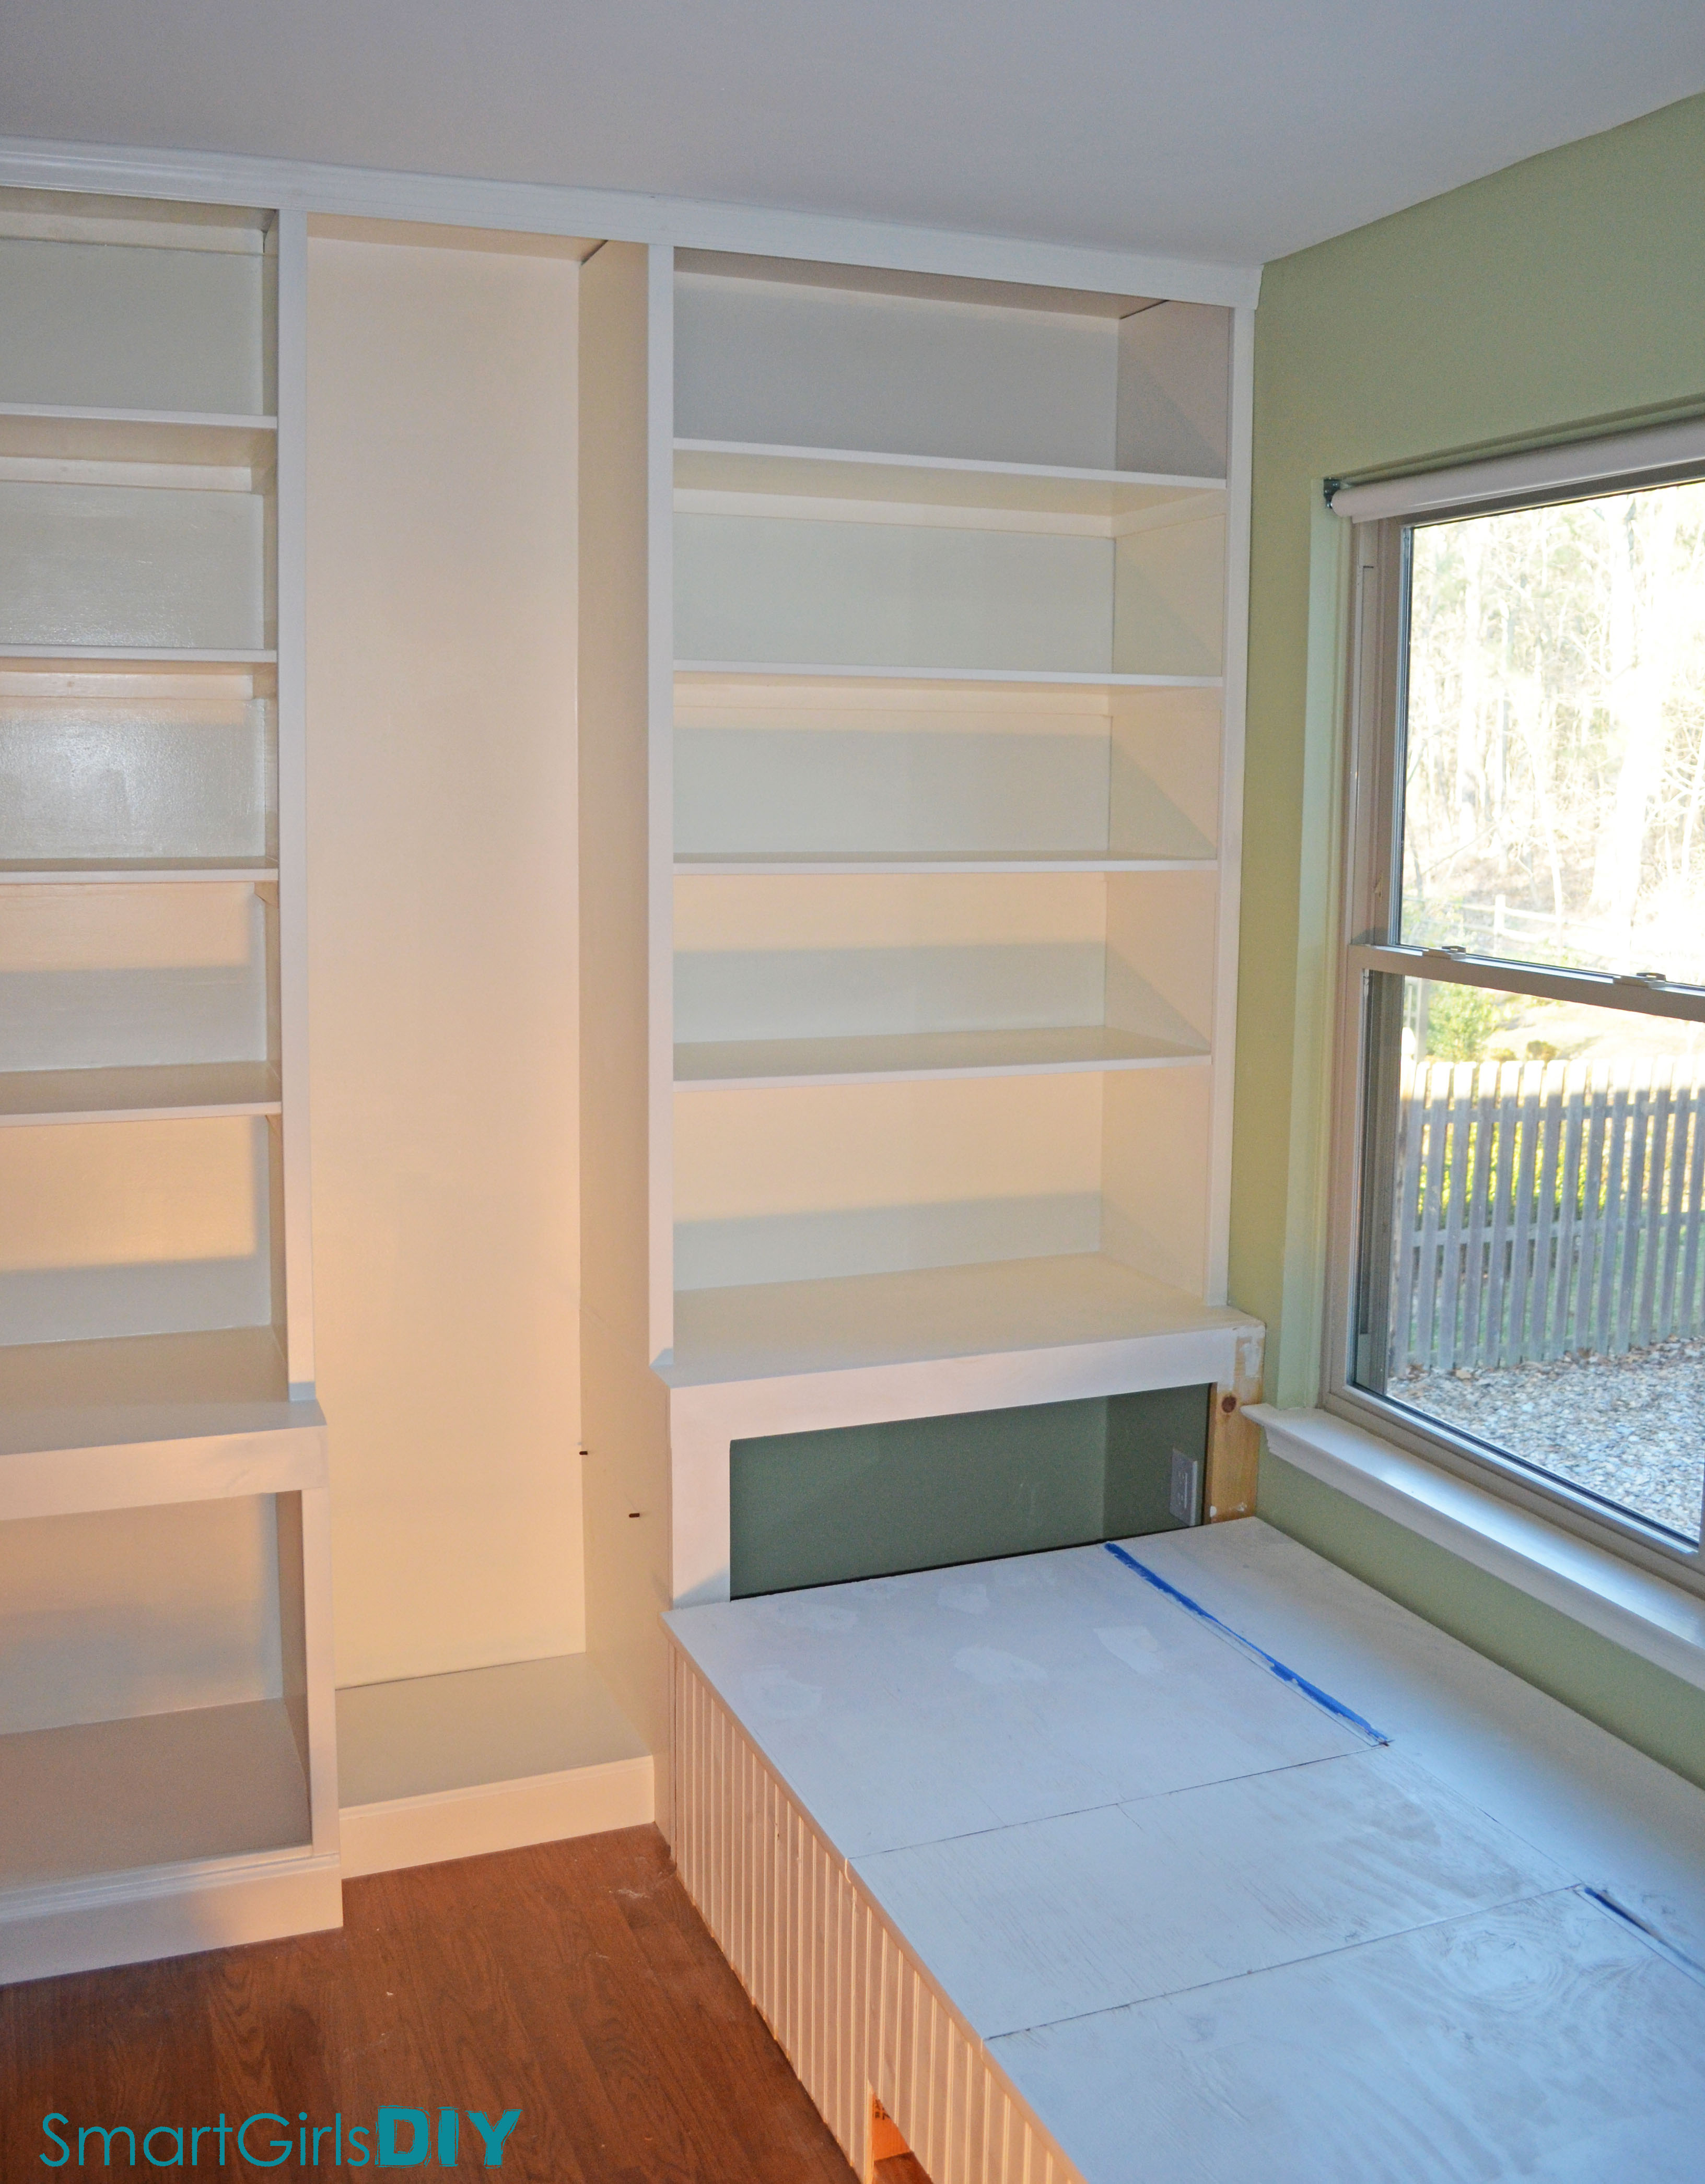 Superb img of Window seat day bed and built in bookshelves with #7B4125 color and 3264x4182 pixels